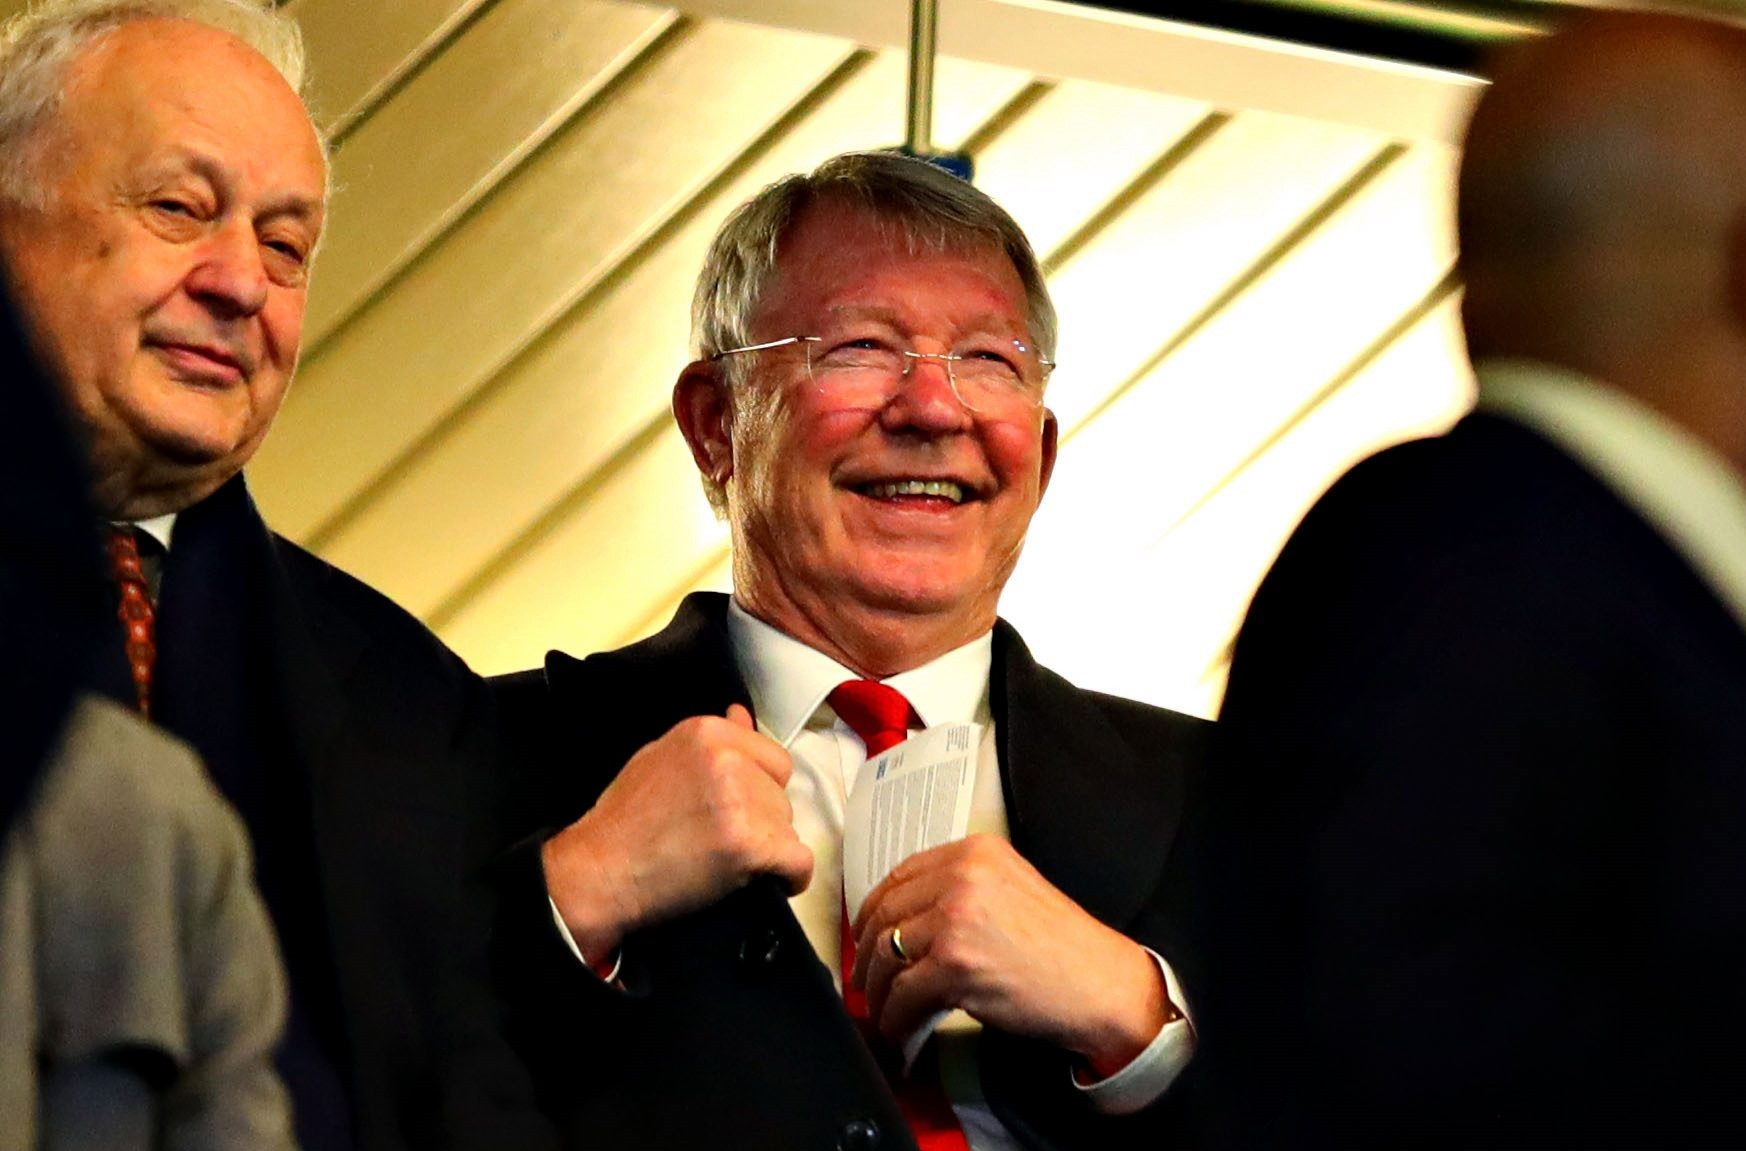 Sir Alex Ferguson spent 26 years in charge of Manchester United